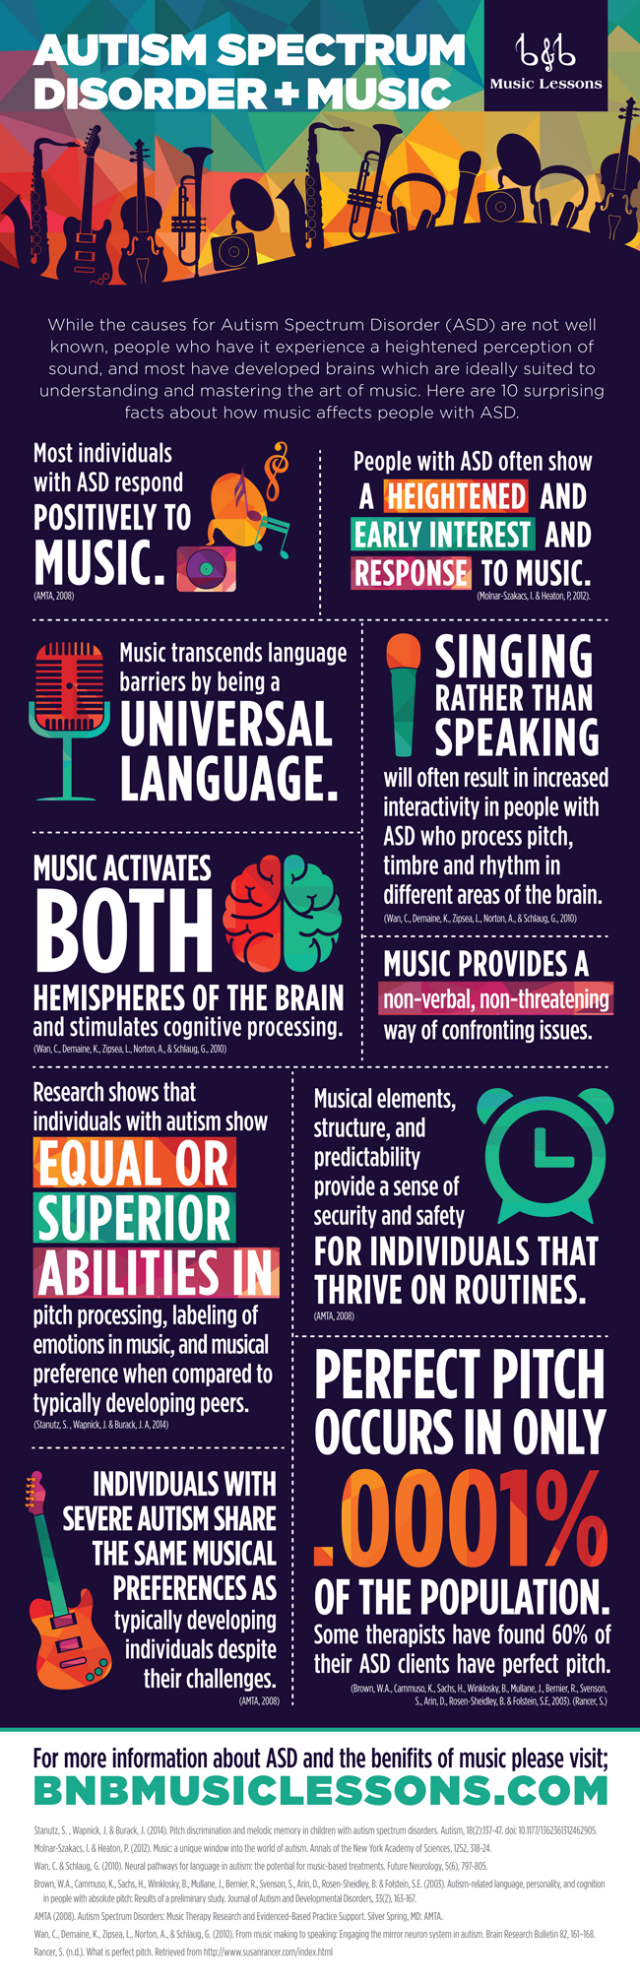 bnb_music_infographic